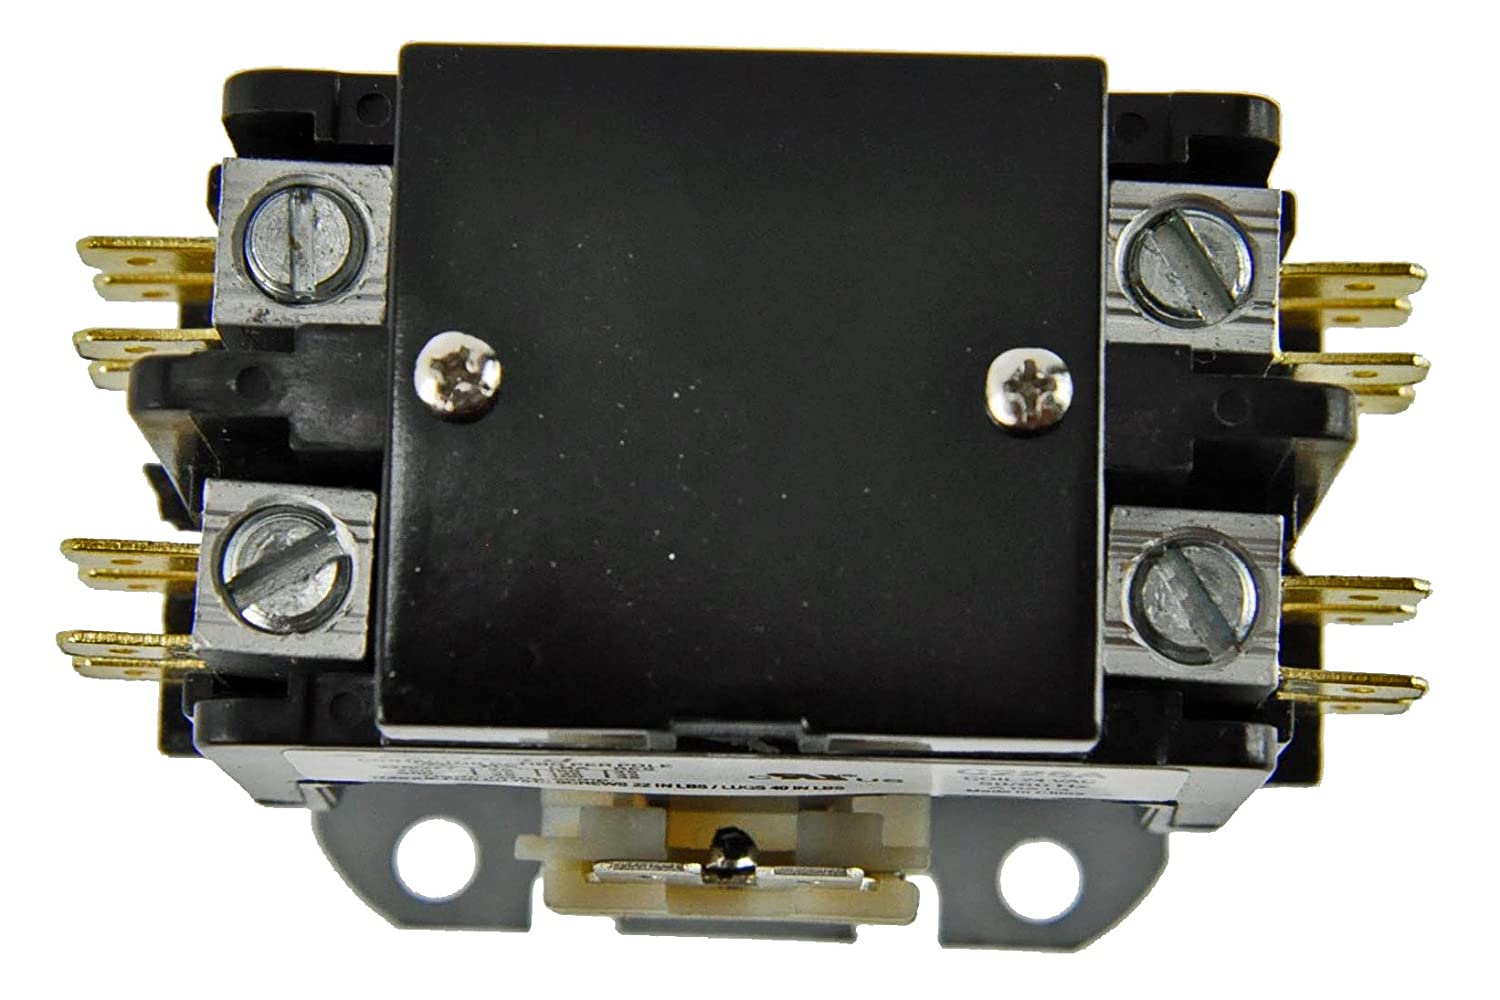 71JnMan9rQL._SL1500_ amazon com 2 pole 30 amp 24v coil replacement contactor for coleman